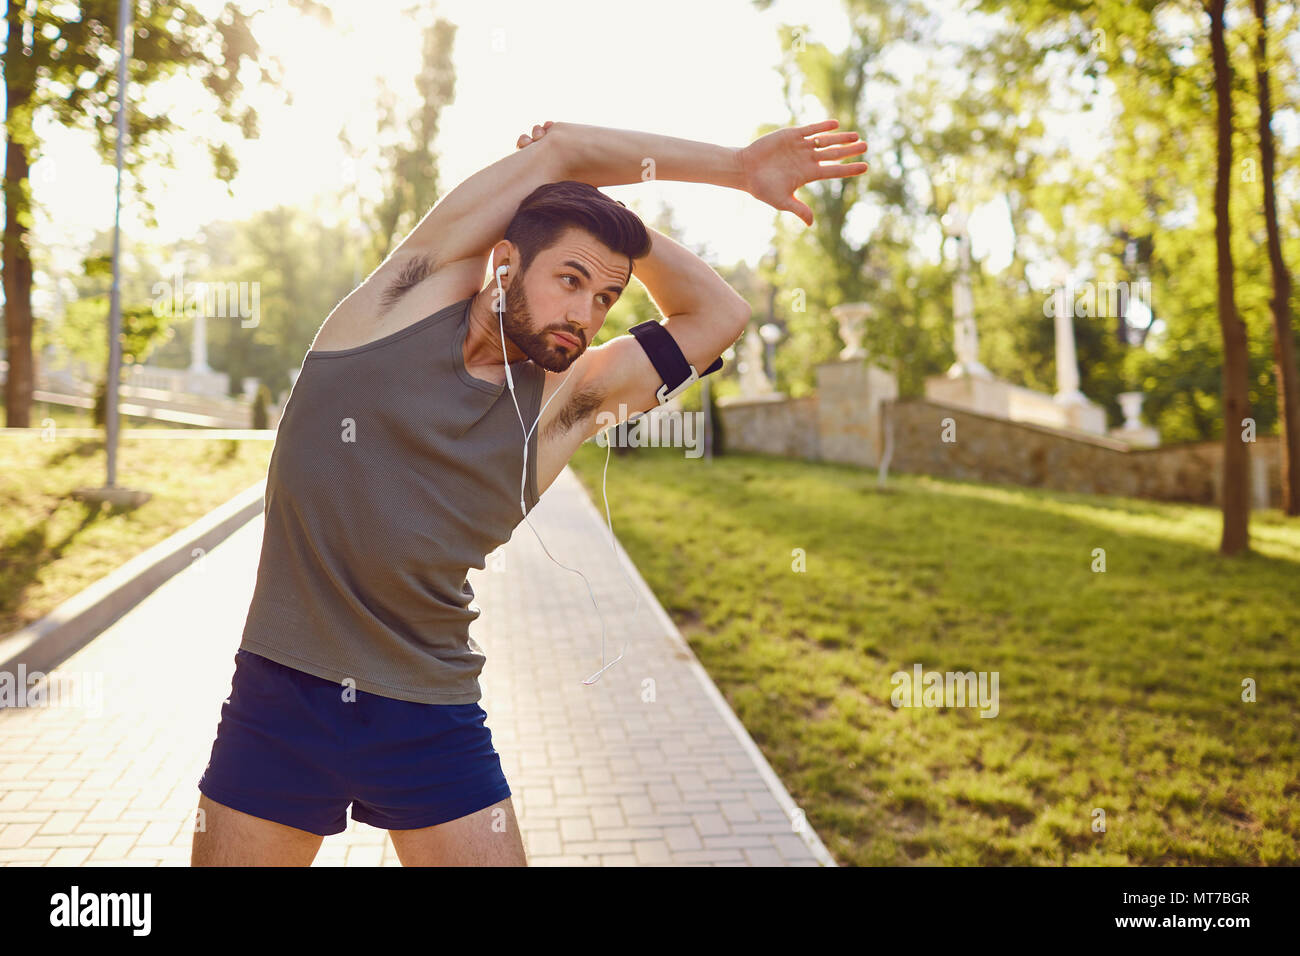 Young man doing stretching in the park. - Stock Image